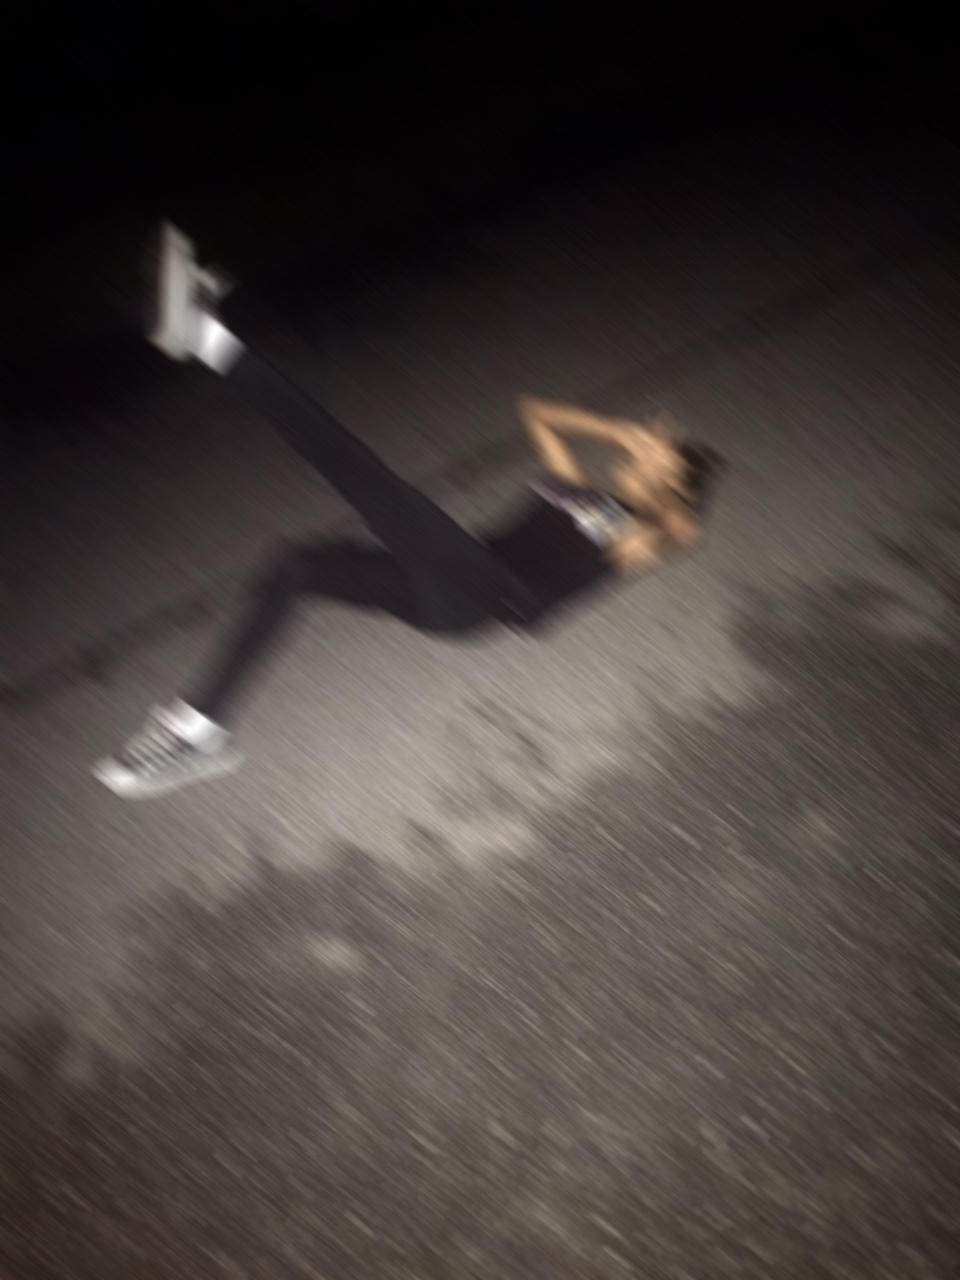 aesthetic, beautiful, black and white, blur, blurry, feet, foot, girl, gorgeous, grunge, kick, me, motion, motion blur, nature, pale, pretty, road, soft grunge, street, pale grunge